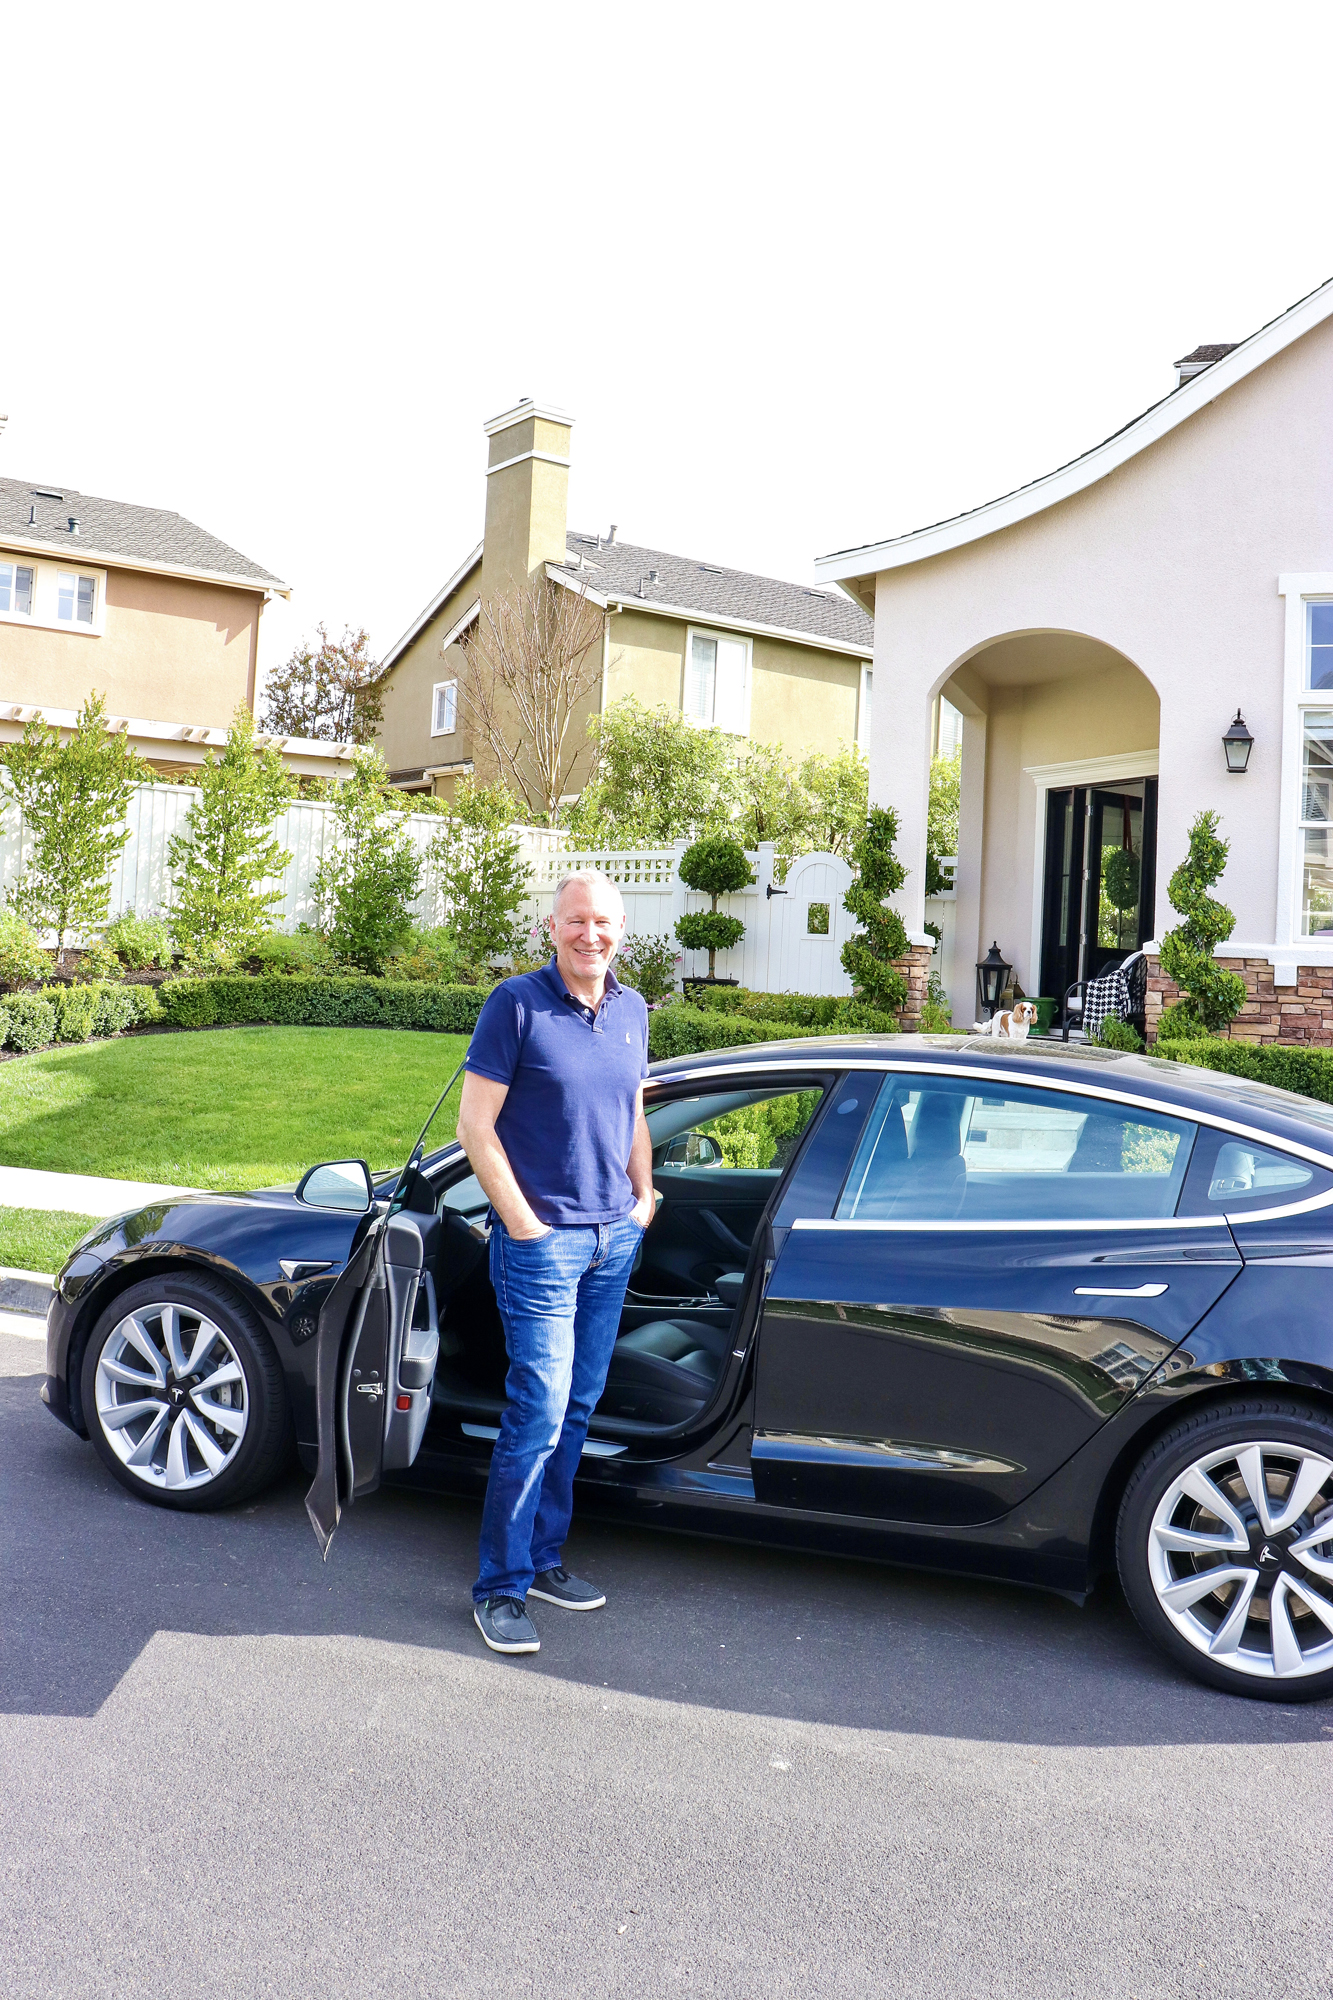 Jeff's Tesla Model 3 Review - So many of you wanted our opinions on the Tesla Model 3 car - is it worth the money? All of our thoughts!